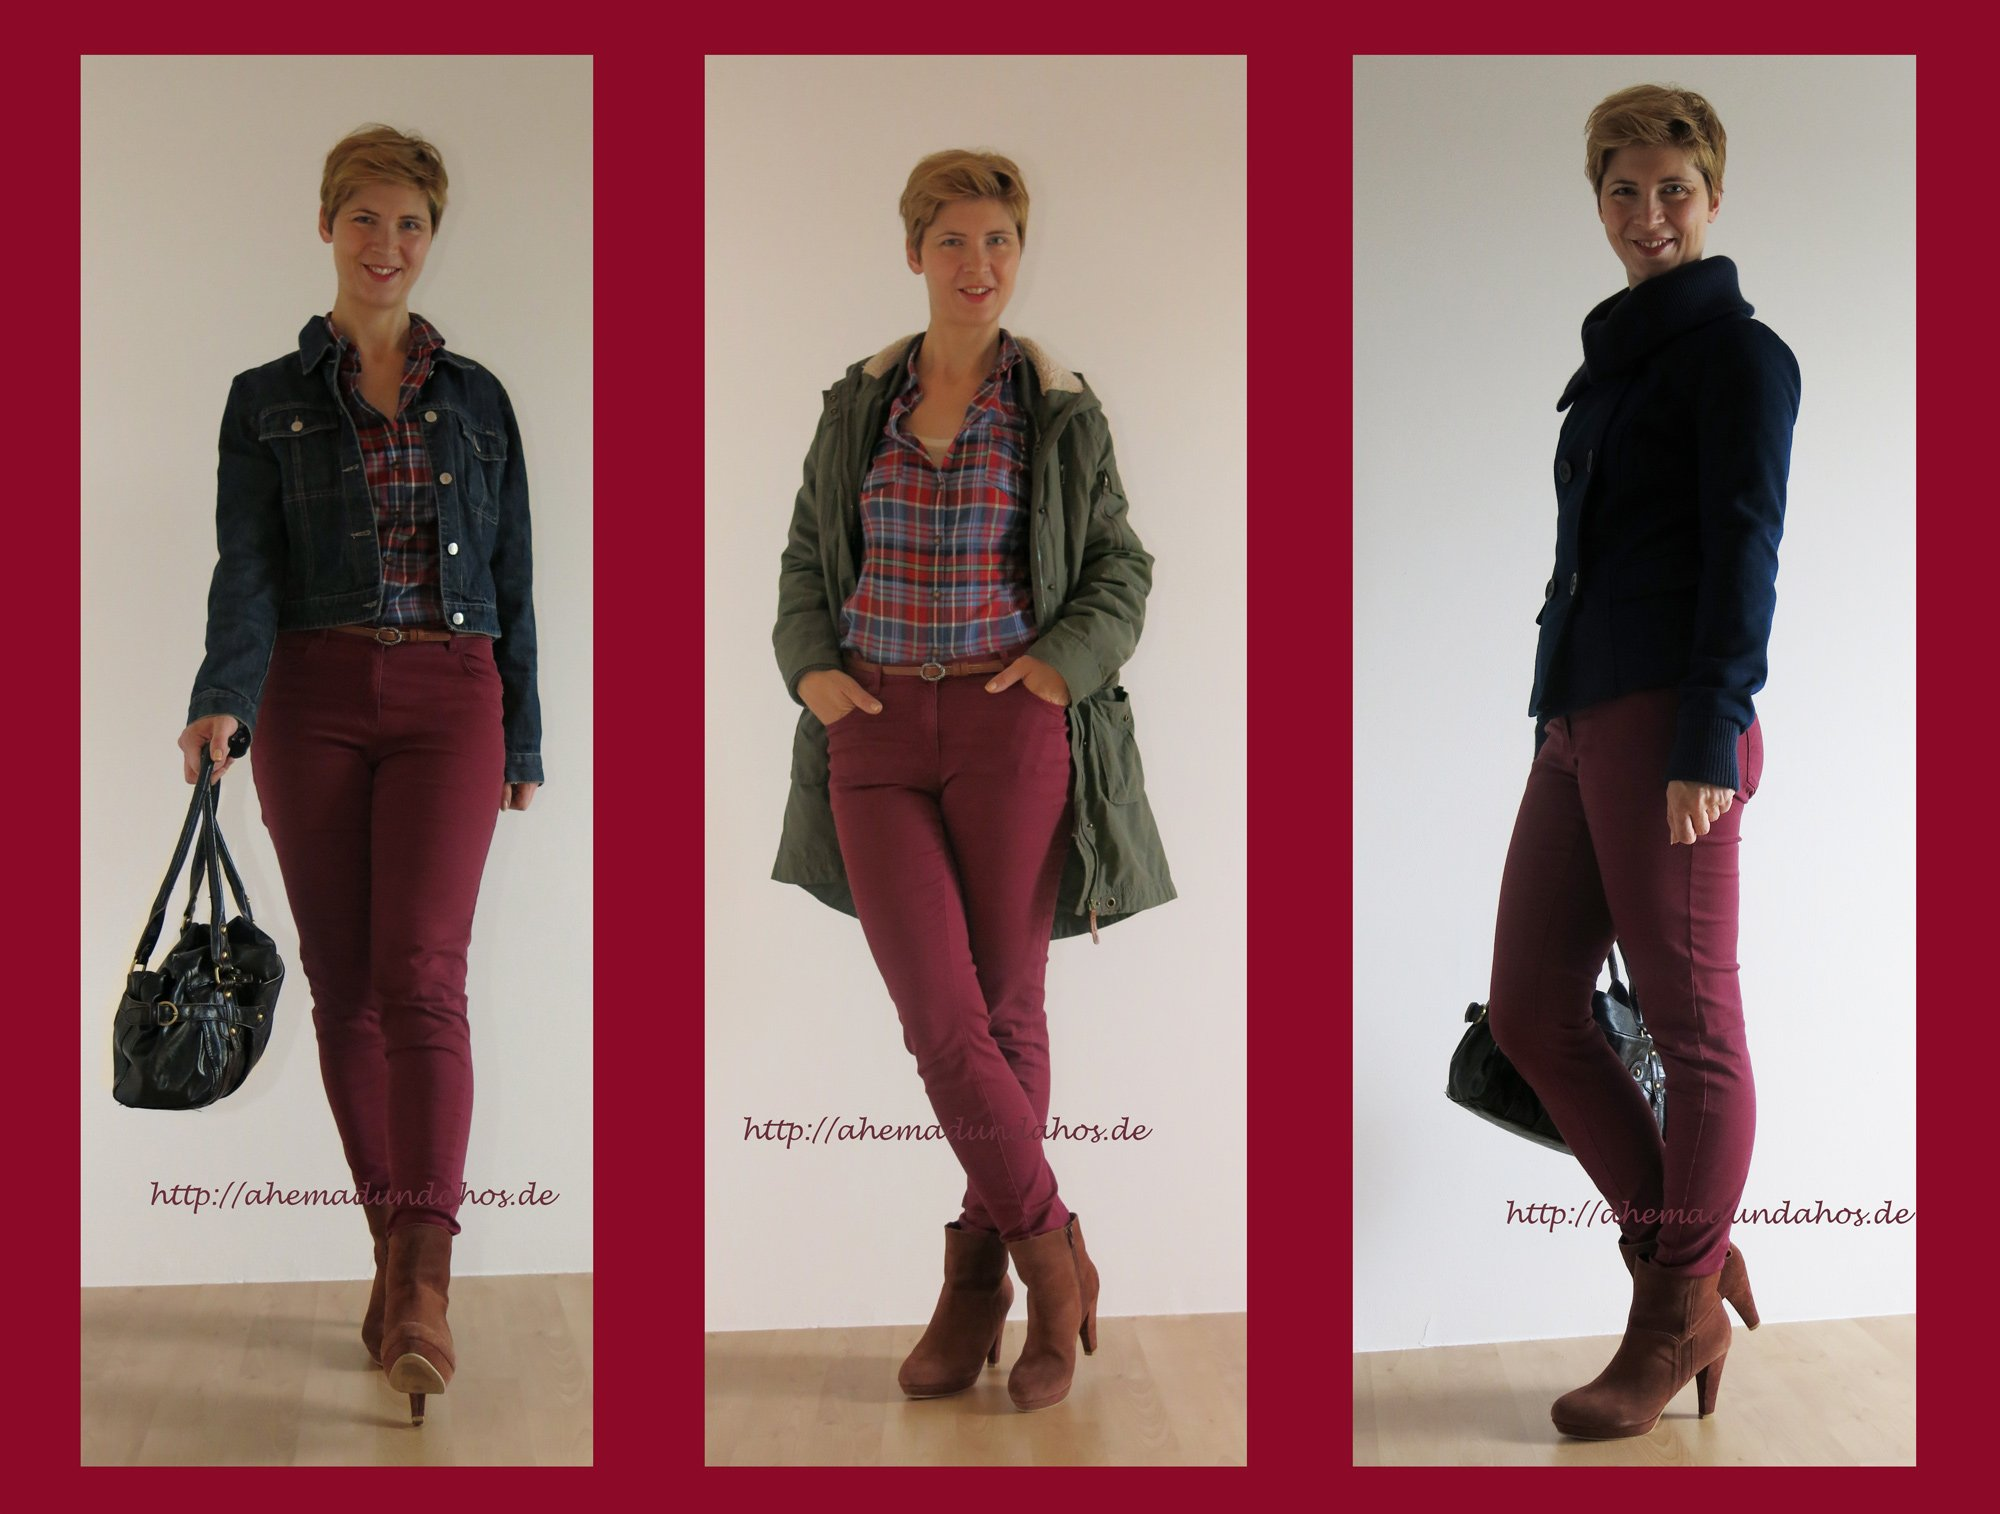 Burgundy - a bit more casual